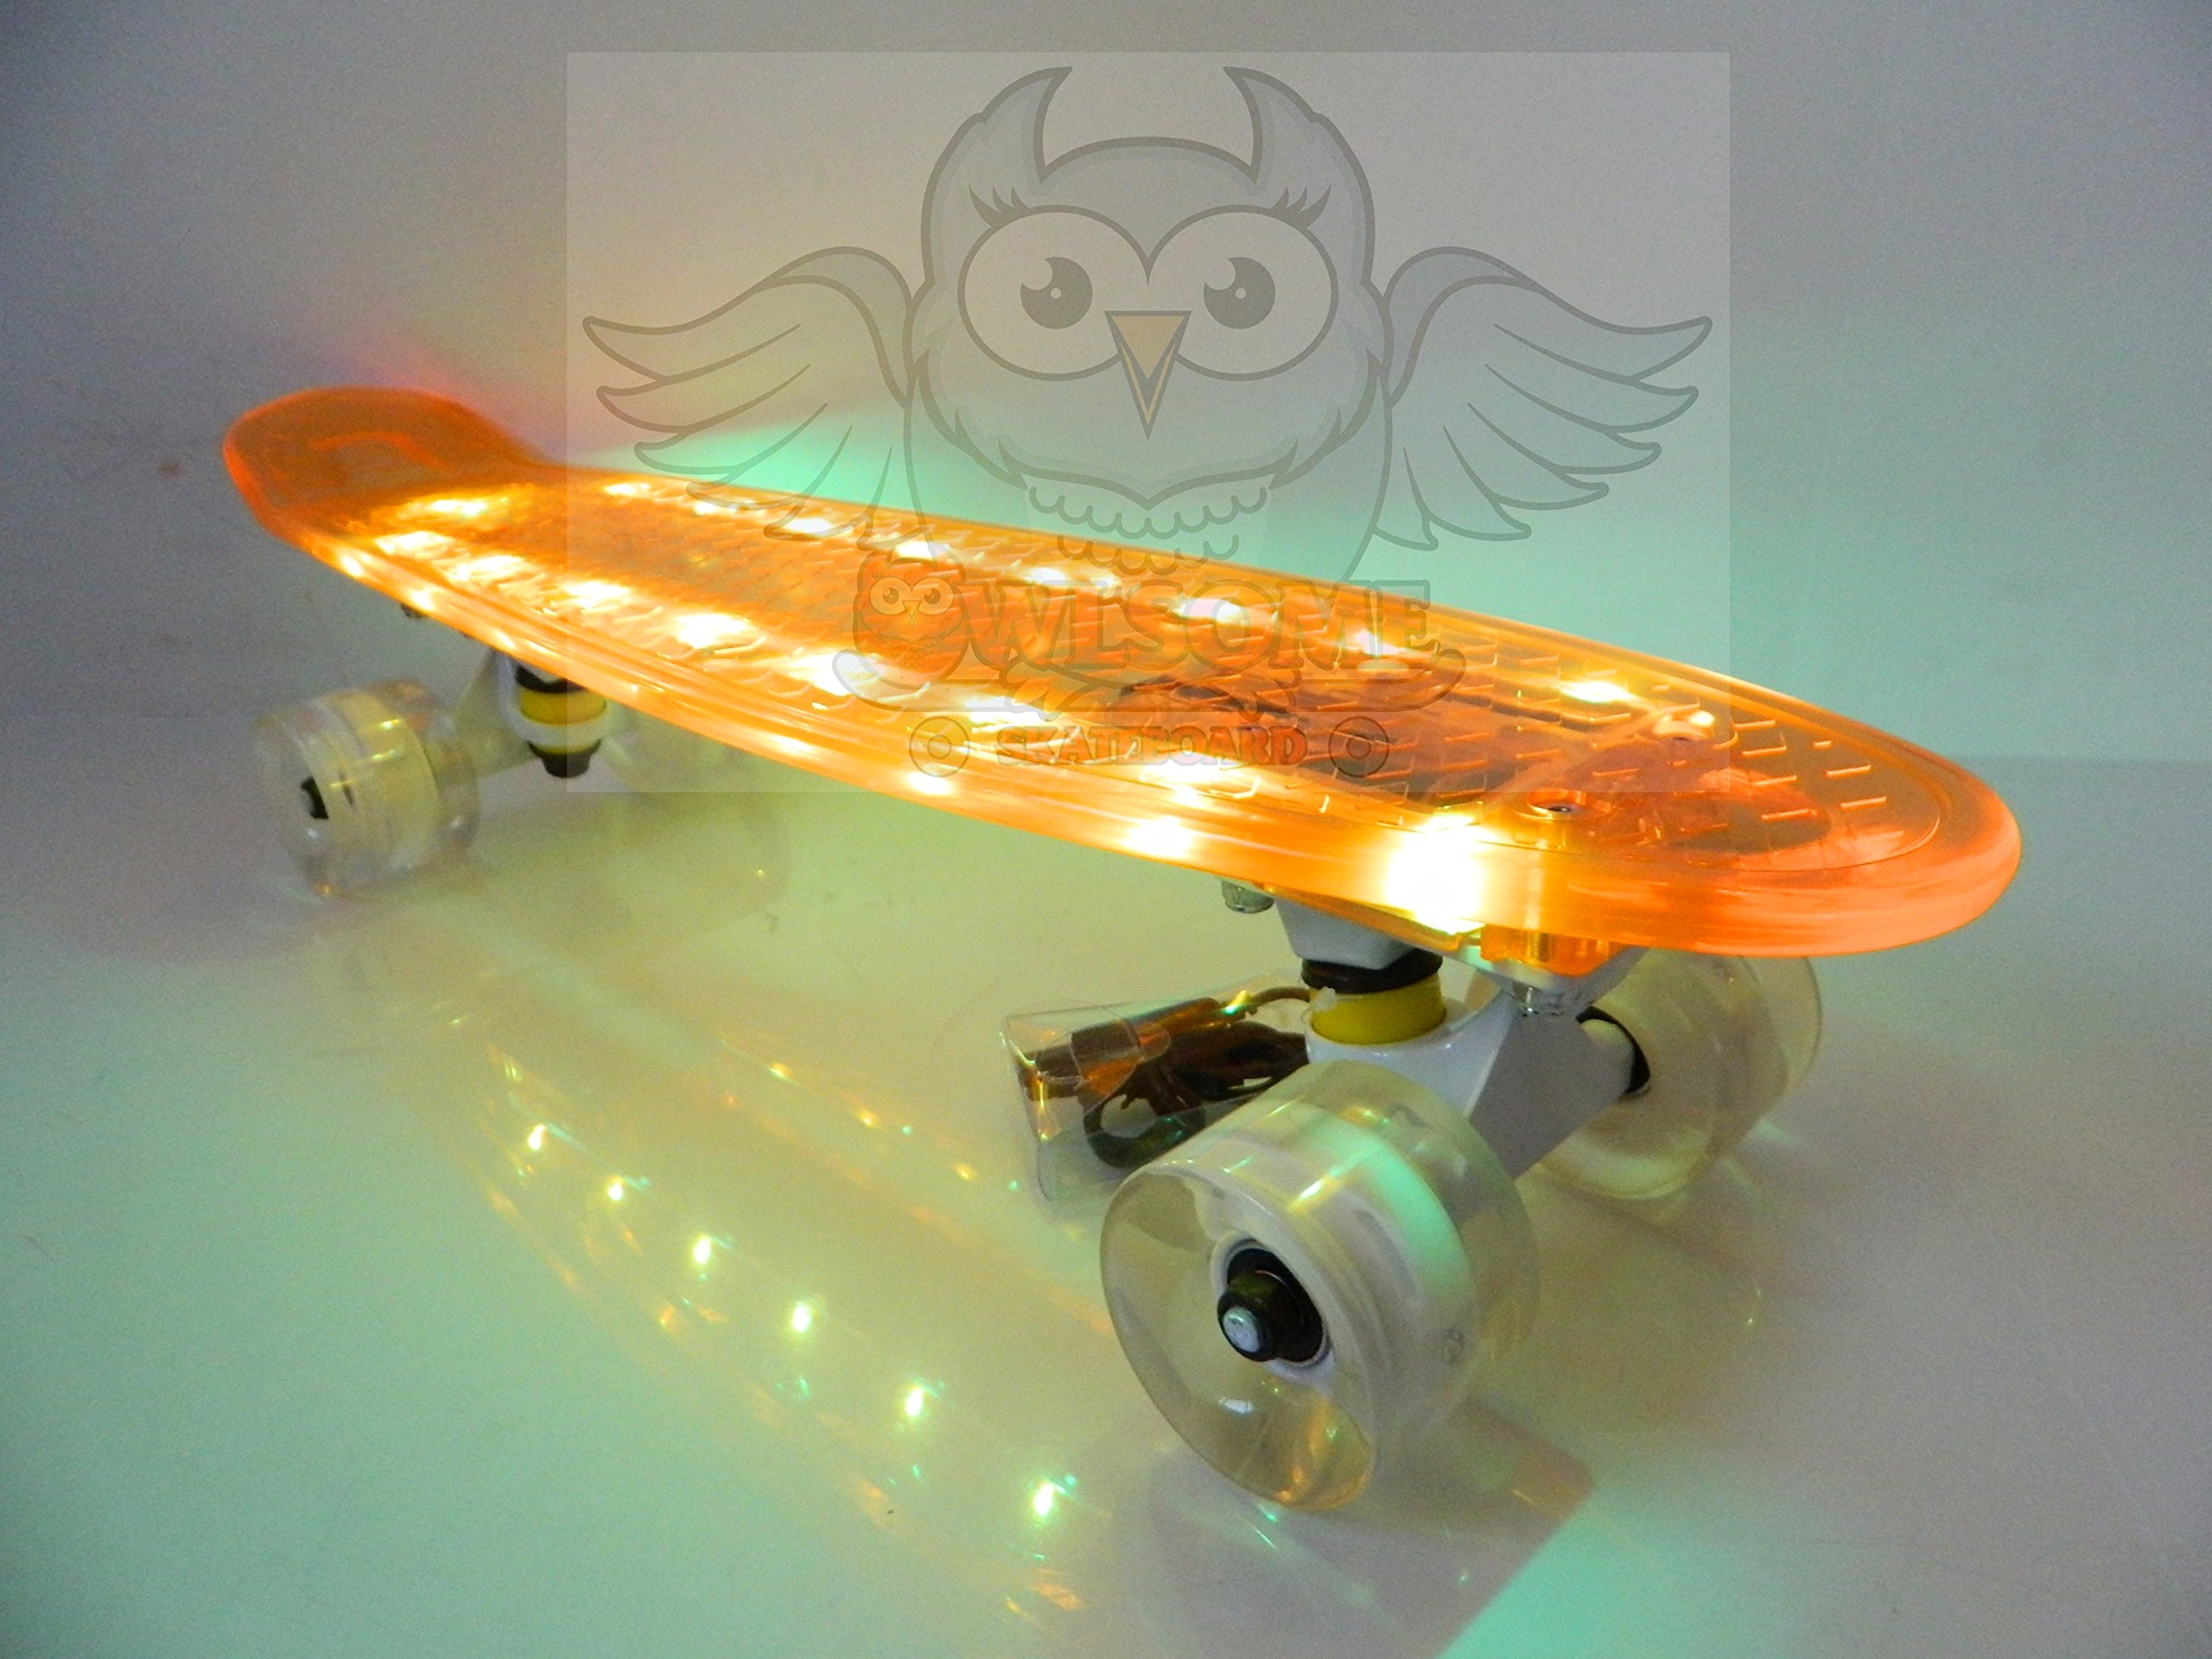 Owlsome Skateboard 22'' x 6'' Rechargeable LED Light Up Deck/Wheels Plastic Mini Cruiser (Orange)